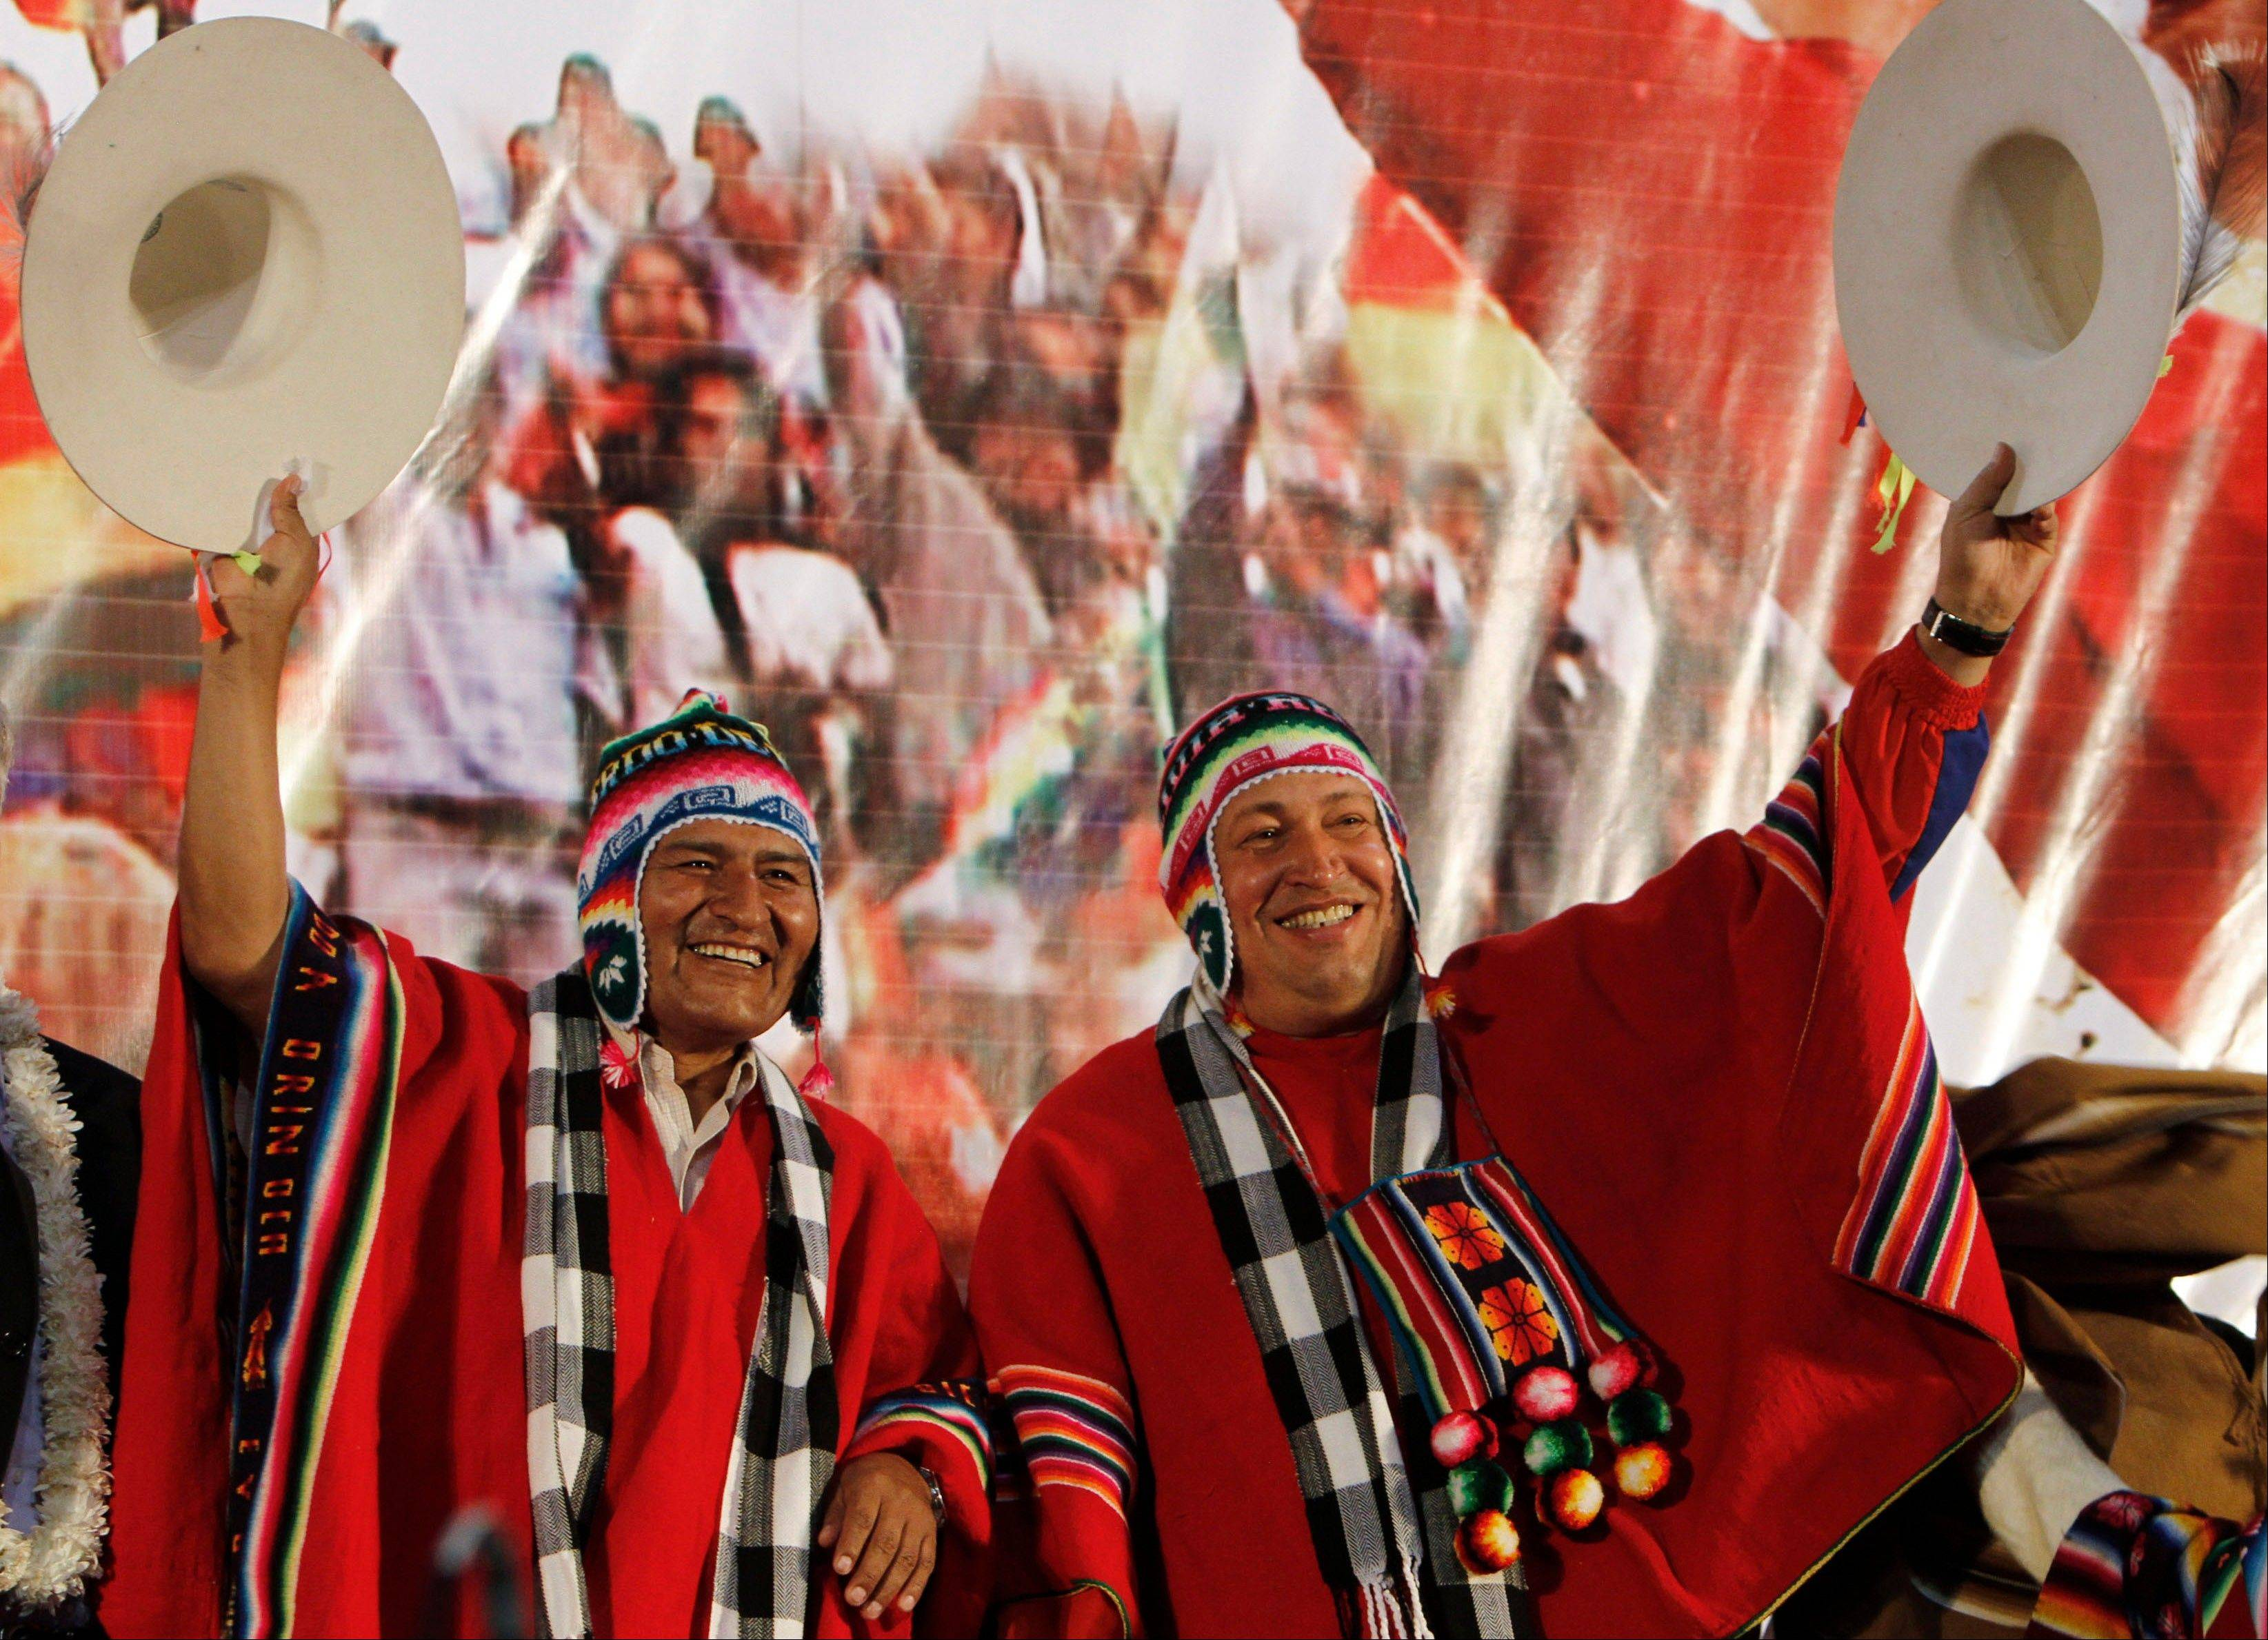 In this March 31, 2011 file photo, Venezuela's President Hugo Chavez, right, and Bolivia's President Evo Morales, dressed in traditional Quechua indigenous clothing, wave to supporters at a welcoming ceremony for Chavez in Cochabamba, Bolivia.